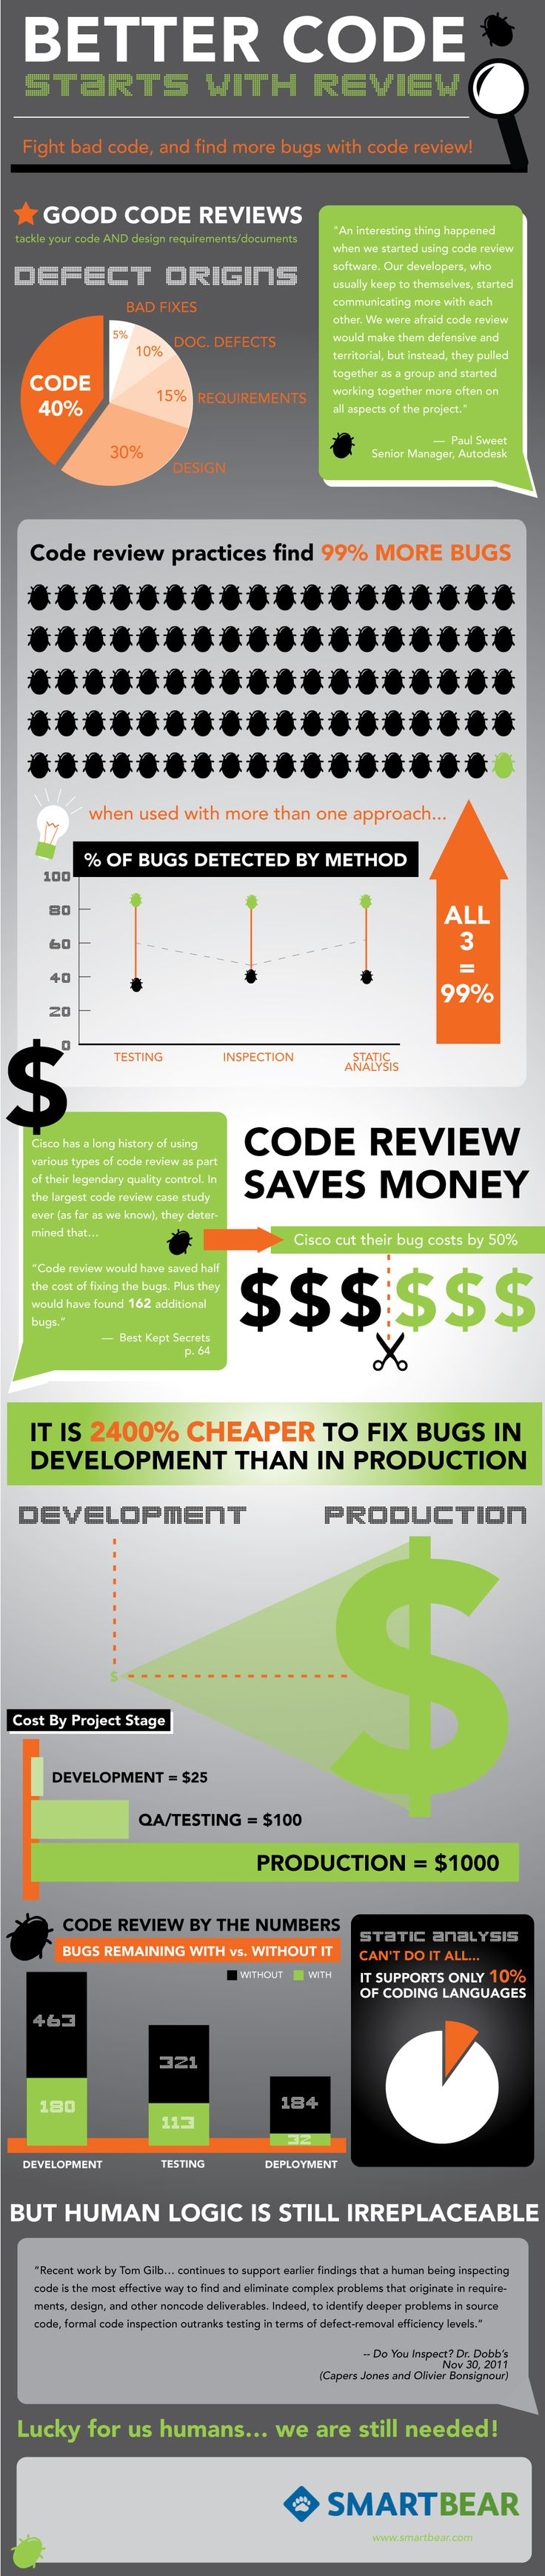 Better code starts with review!